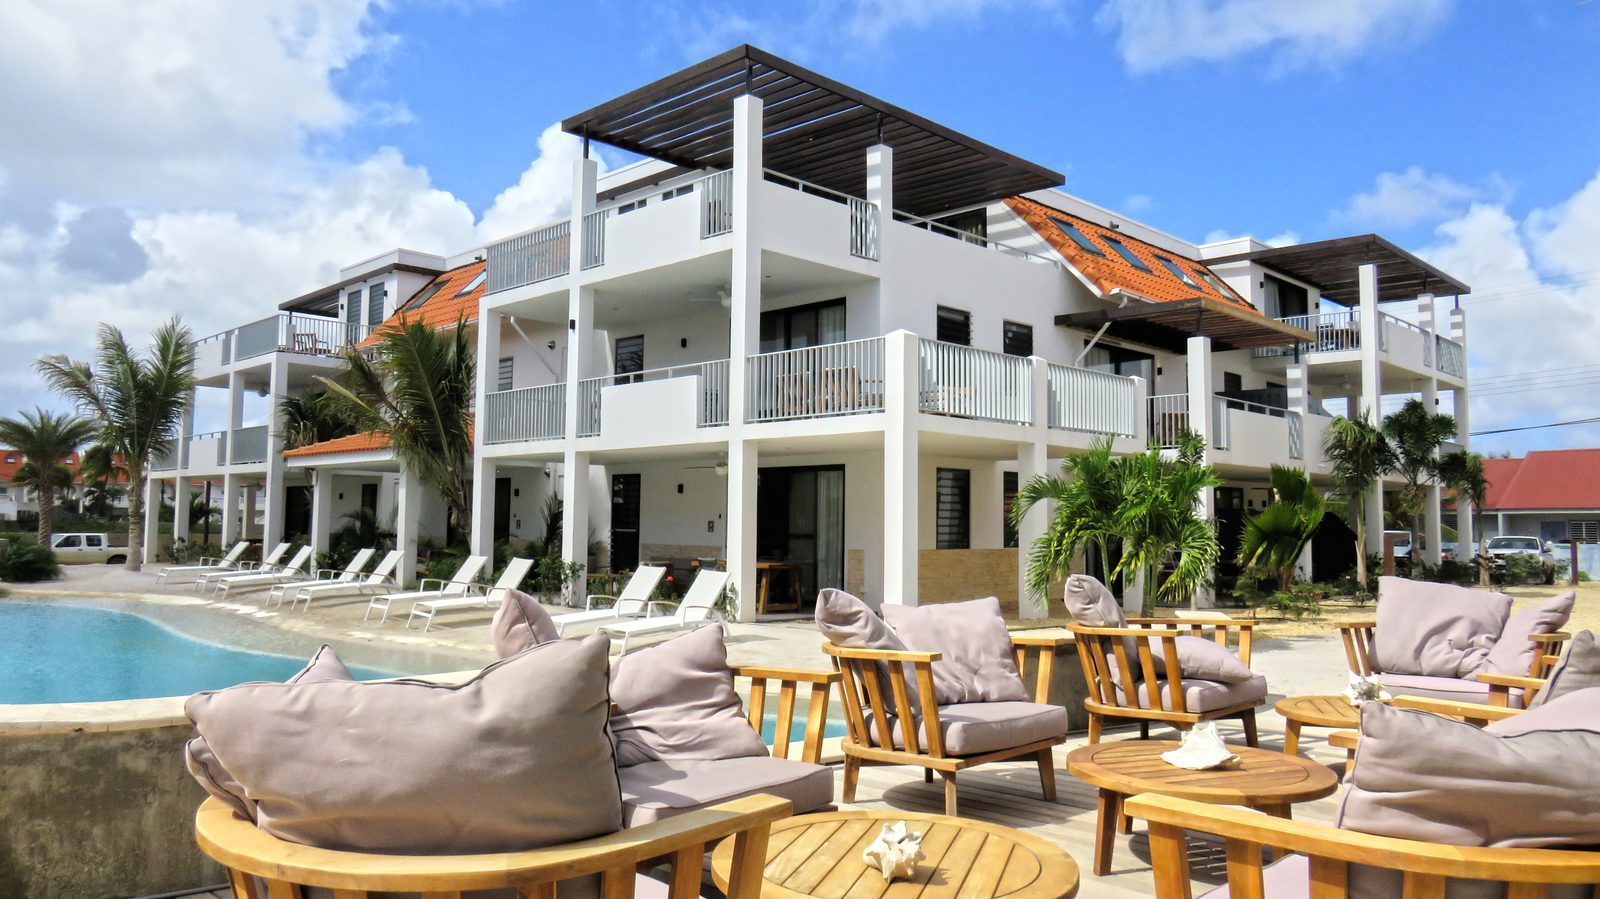 Luxury apartments on Bonaire